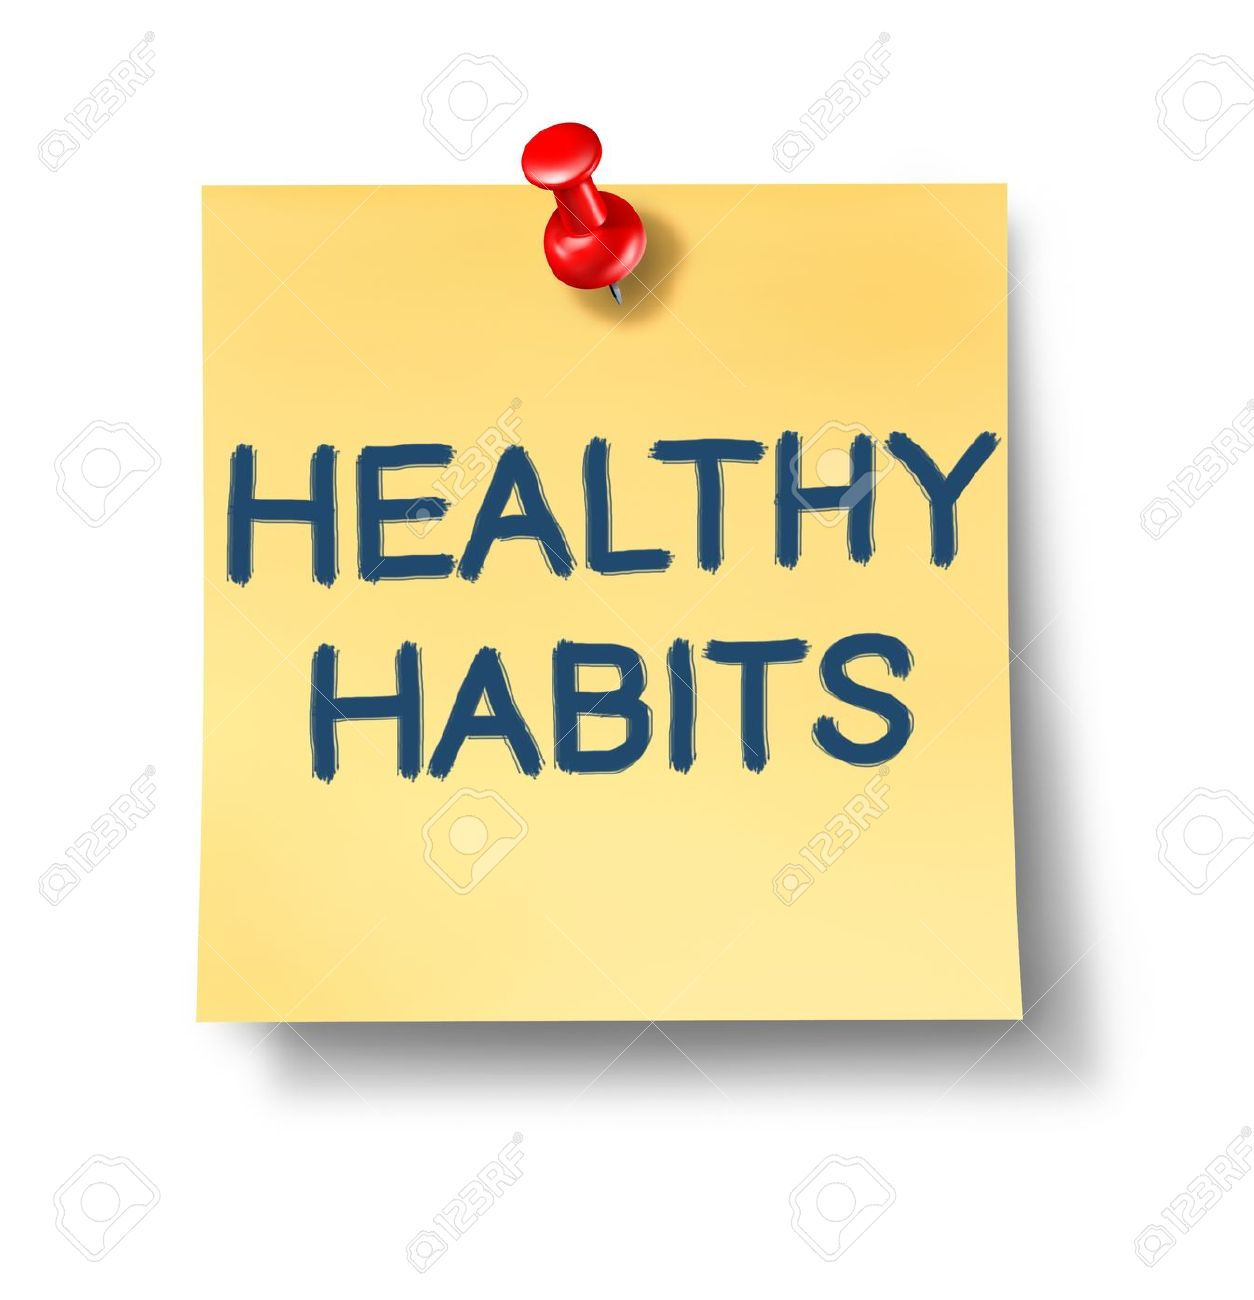 Healthy habits office note representing the concept of good health oriented behavior routine that involves mental and phisical health choices for human well being and a successful lifestyle. - 10892081